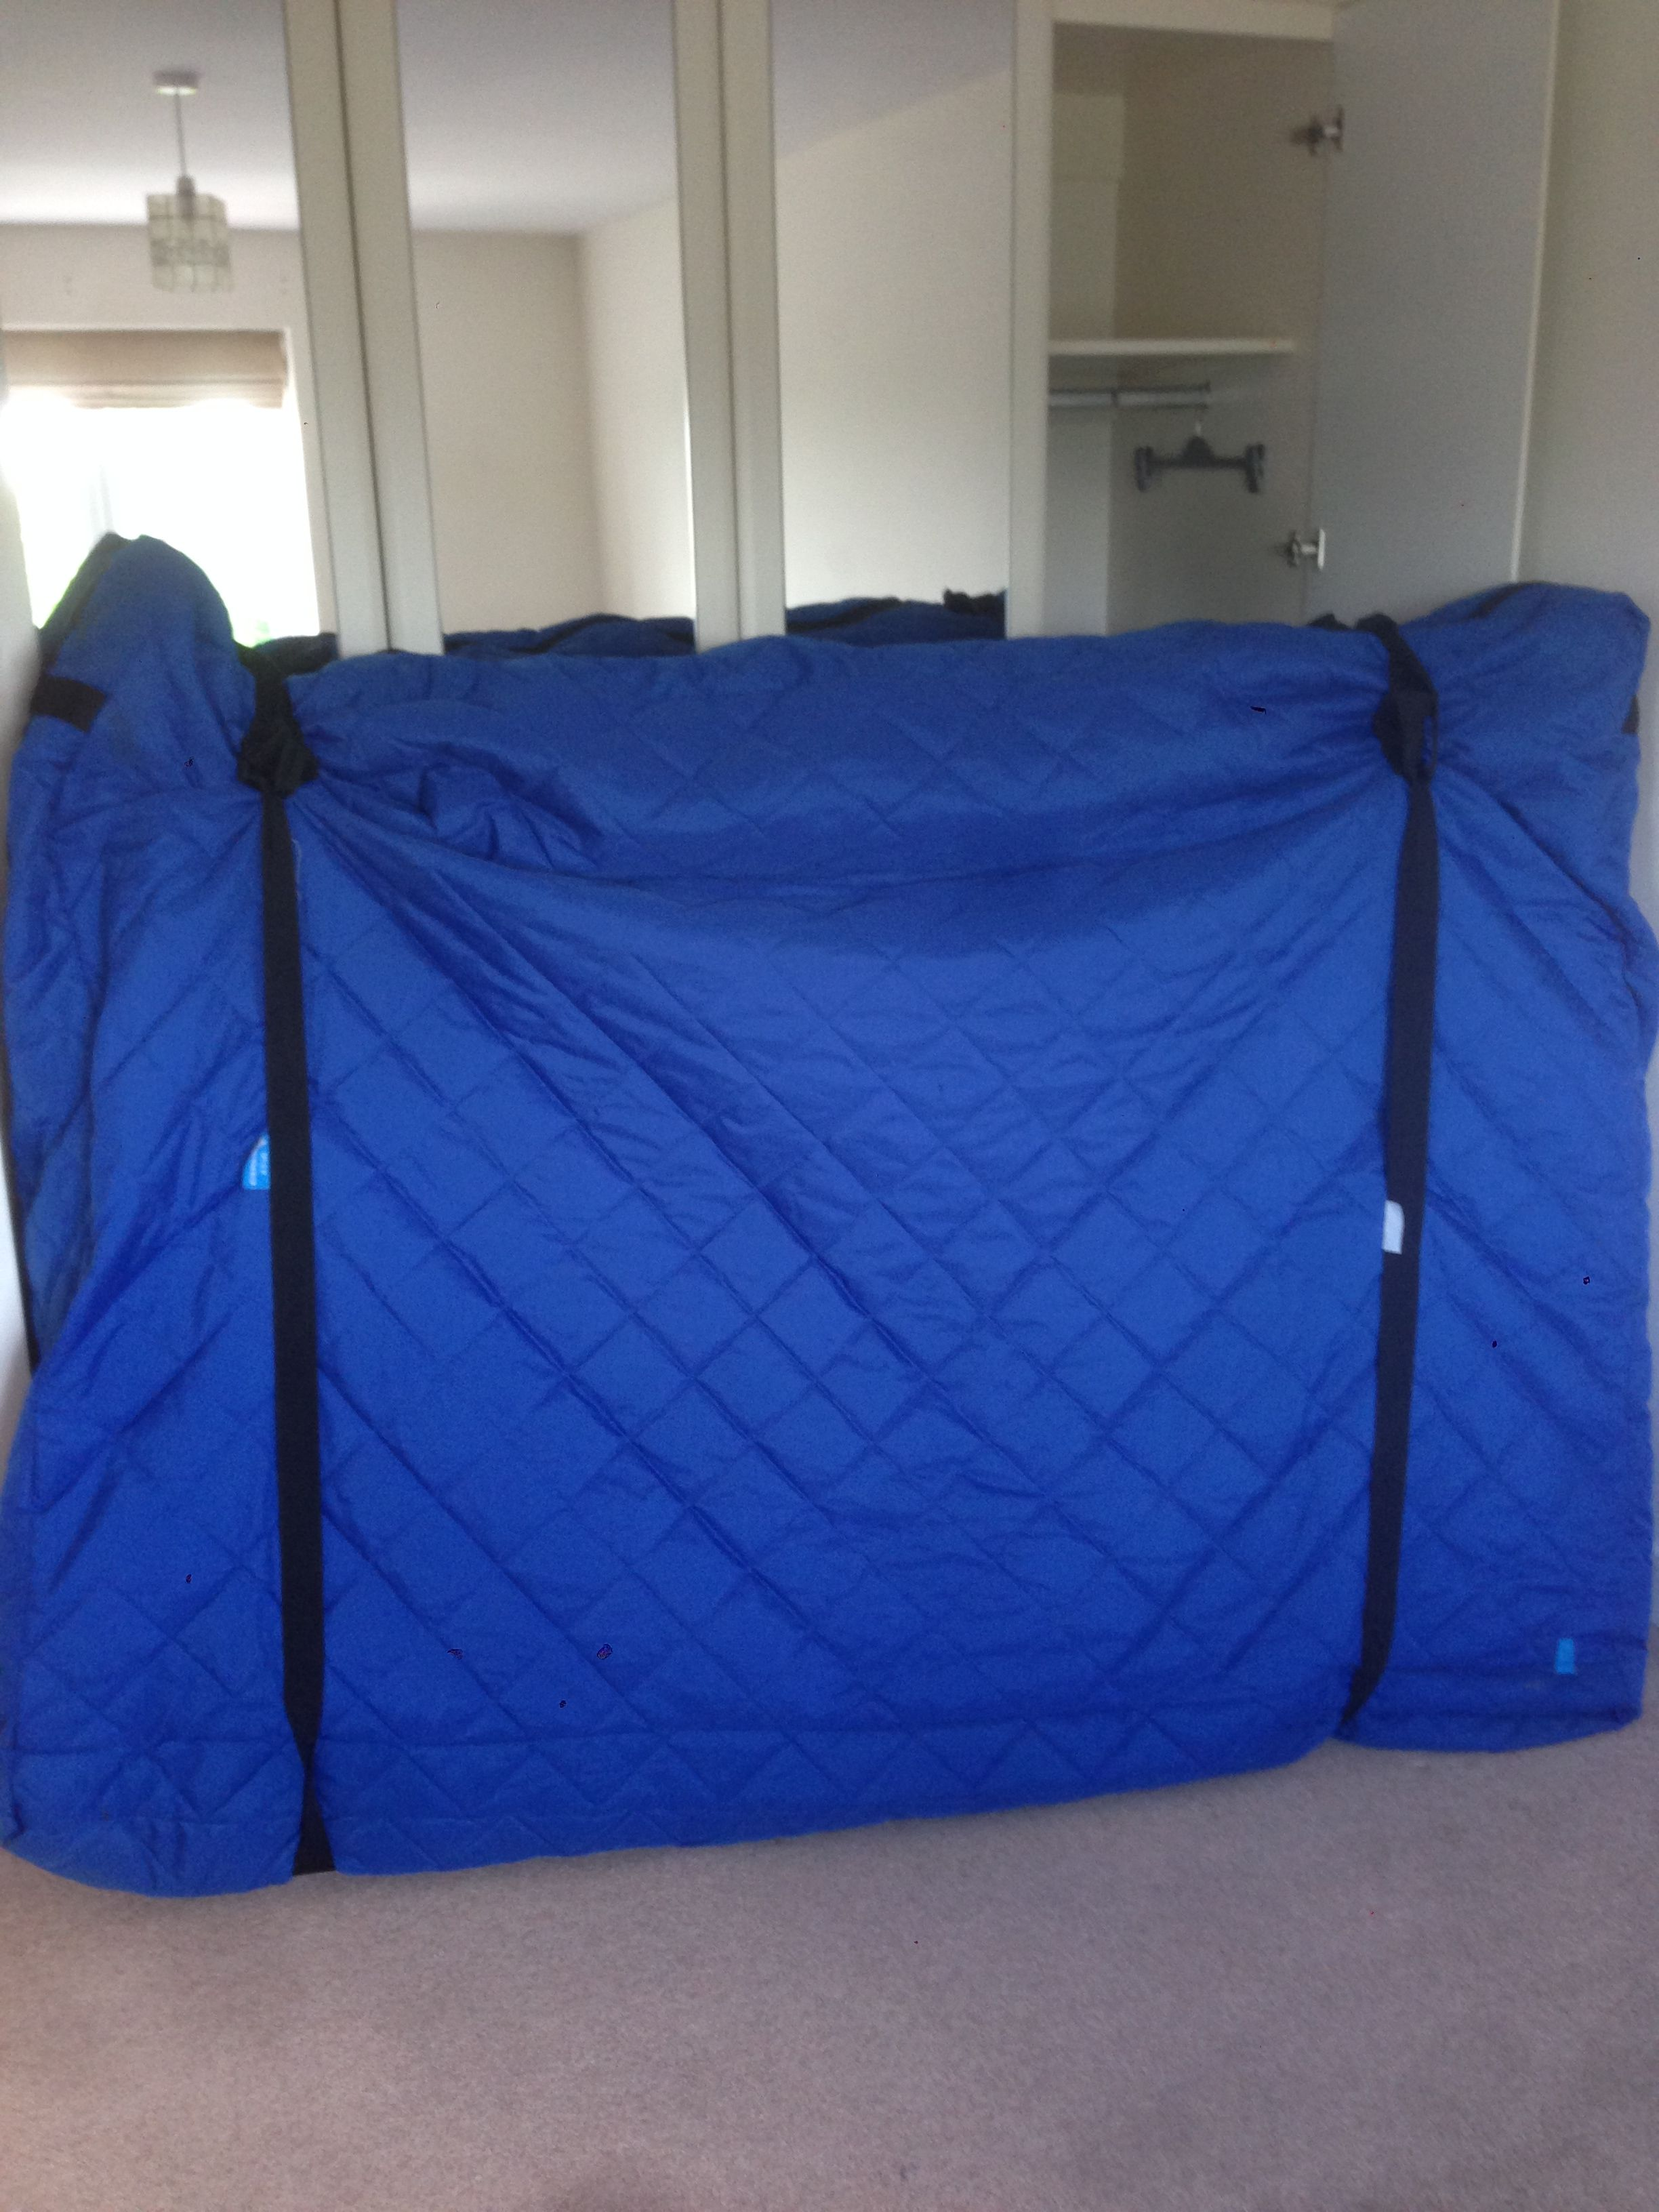 mattress protective cover to keep your mattress clean as you don t